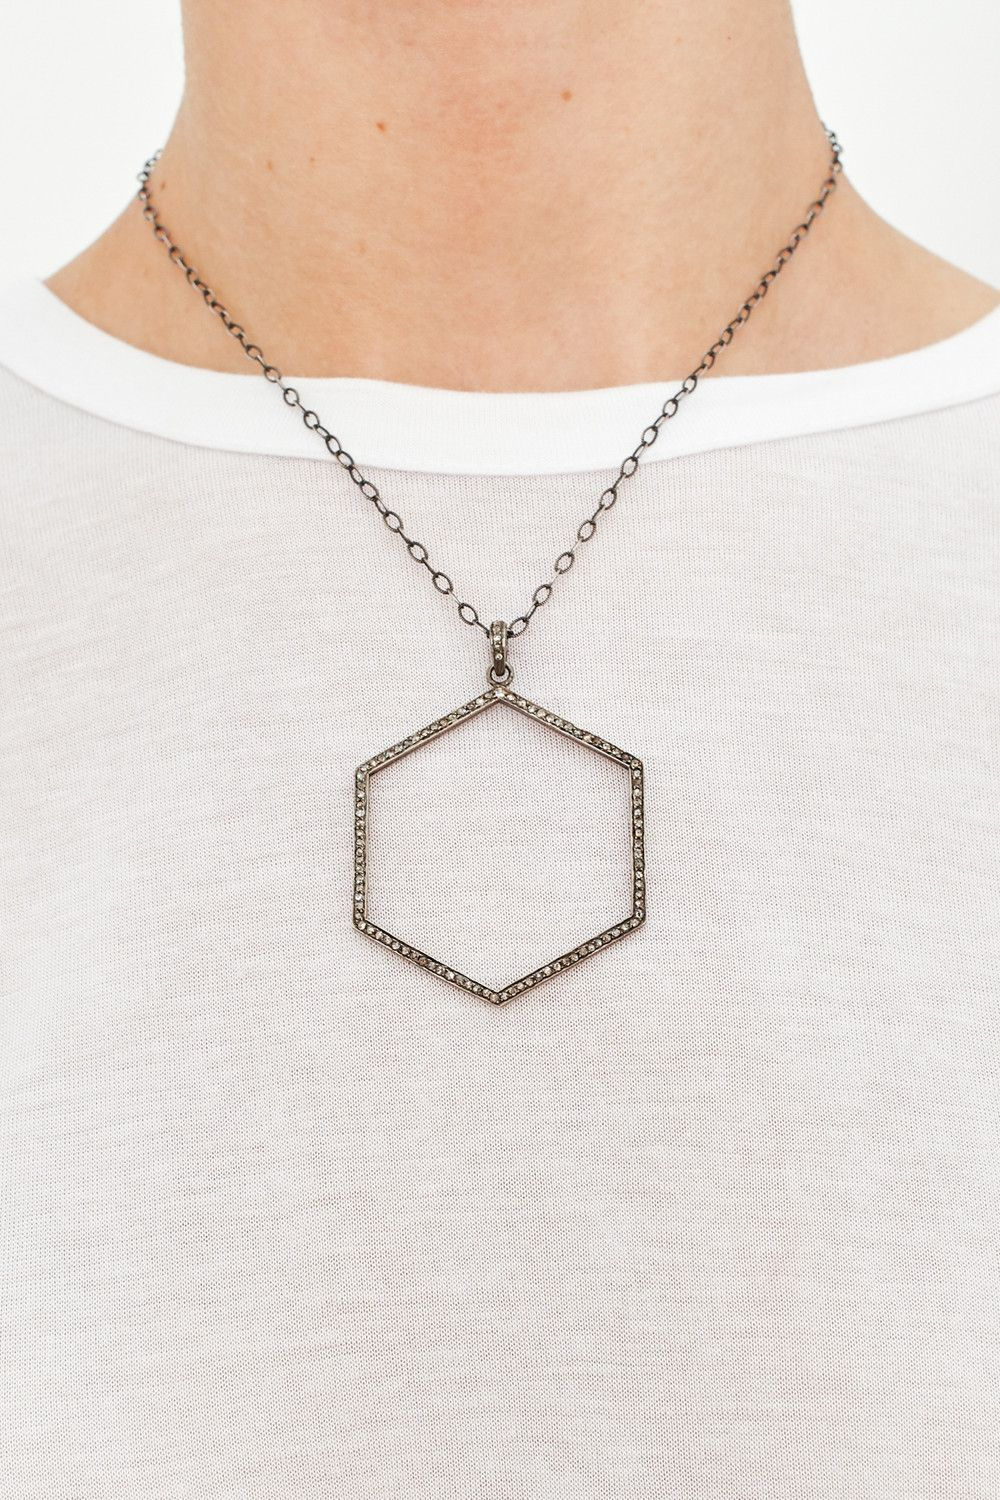 Necklace with Hexagon Pendant Products Pinterest Products